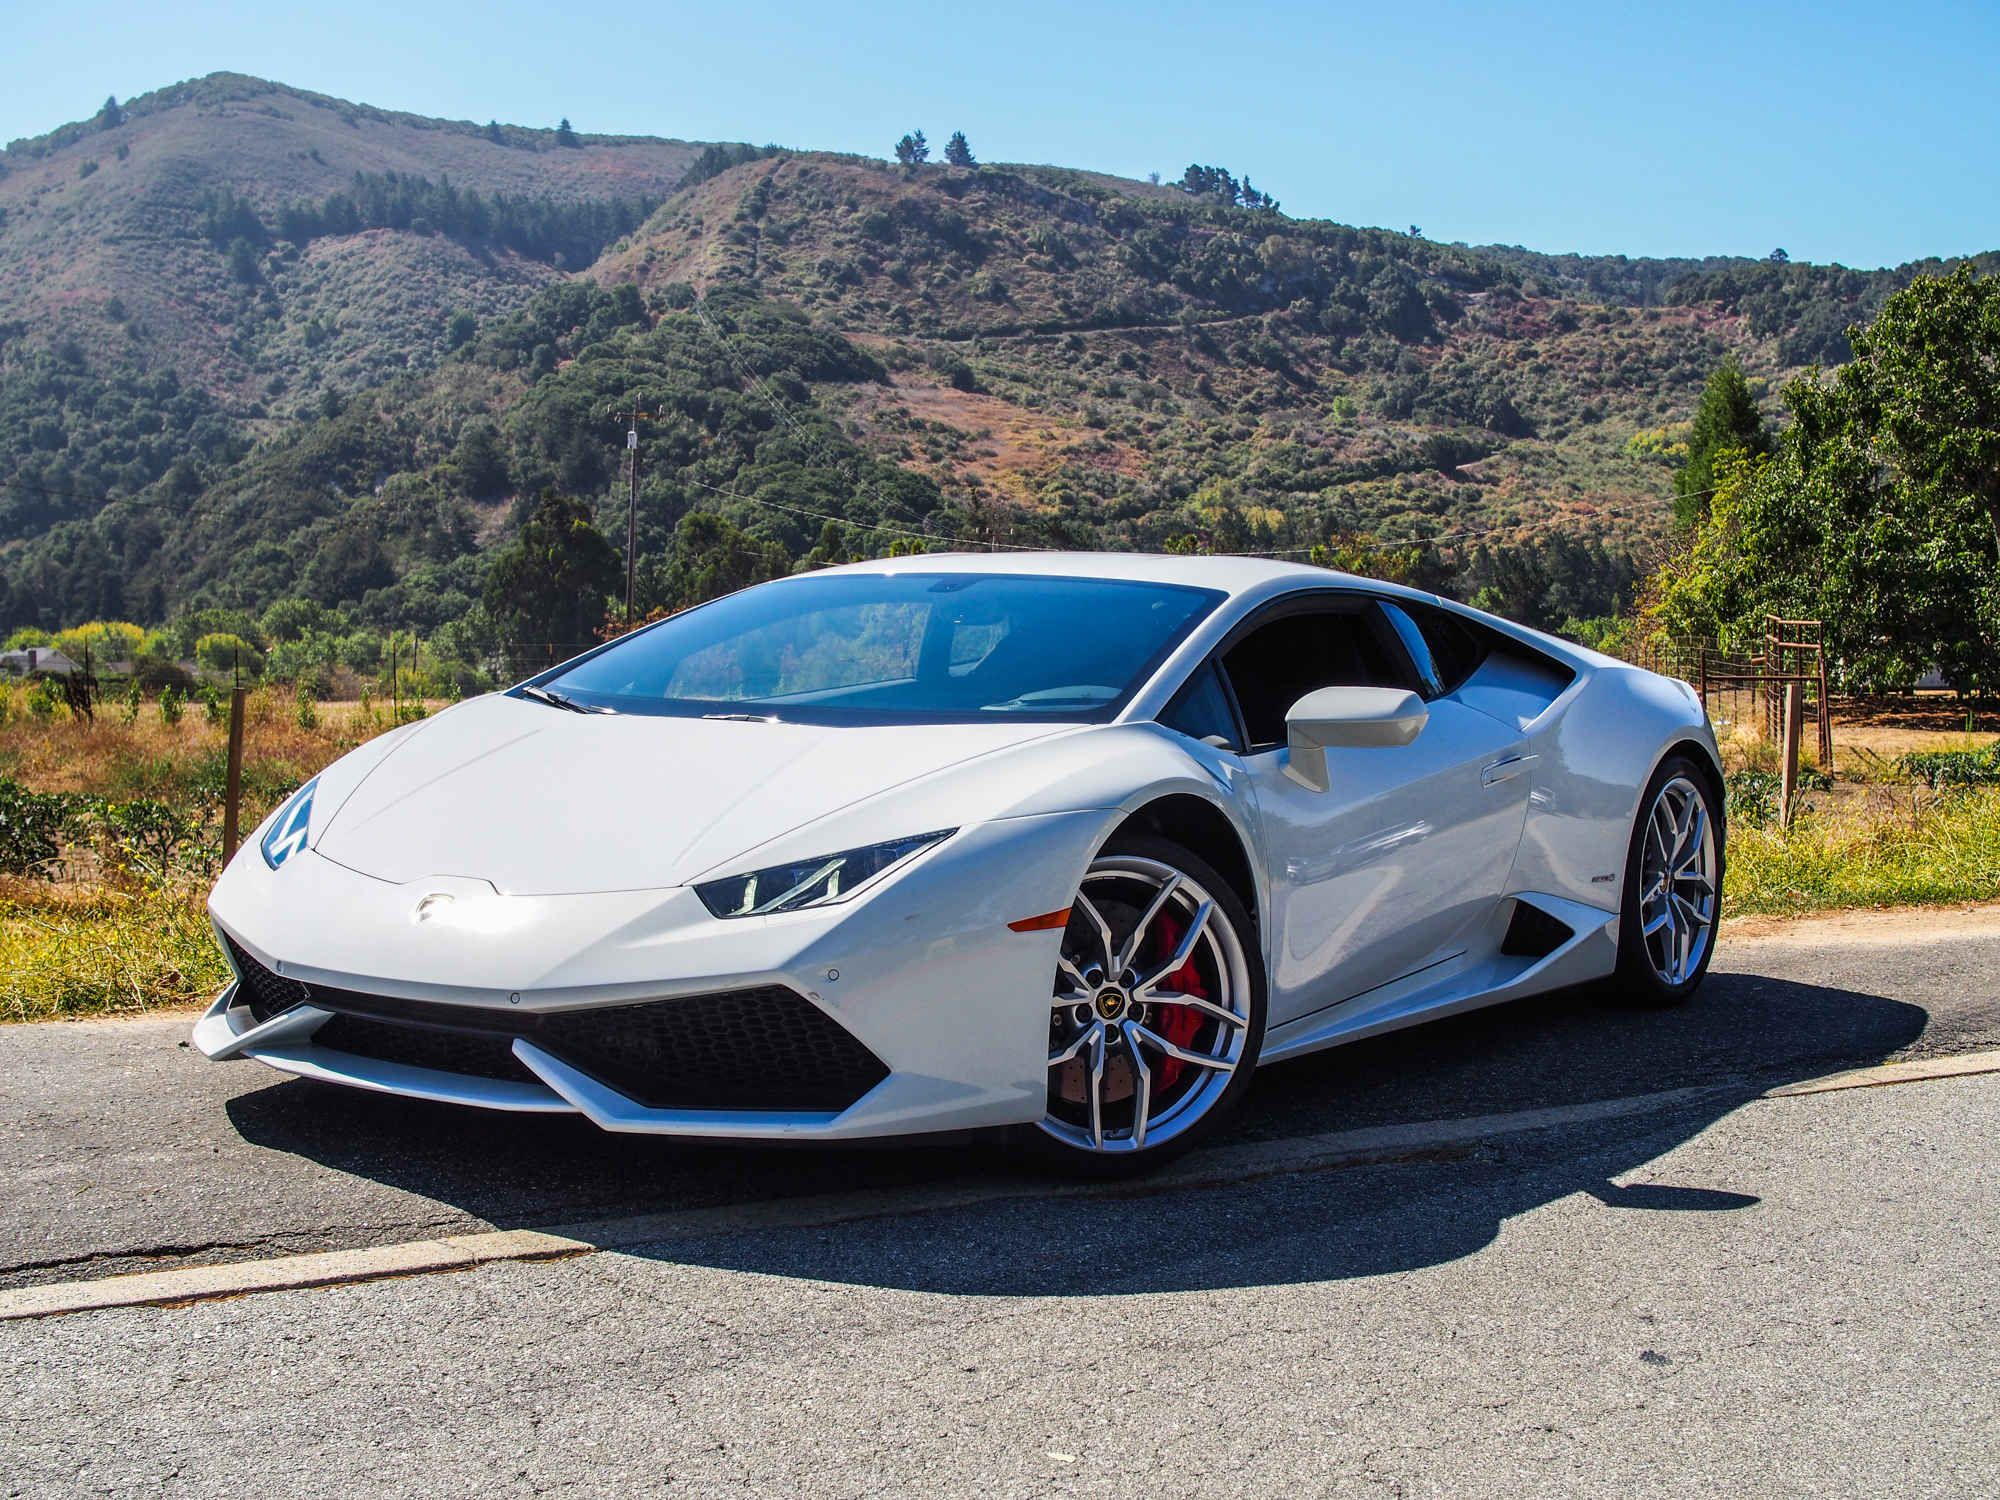 I Owned A Lamborghini Huracan For A Day Lamborghini Huracan Super Luxury Cars Lamborghini